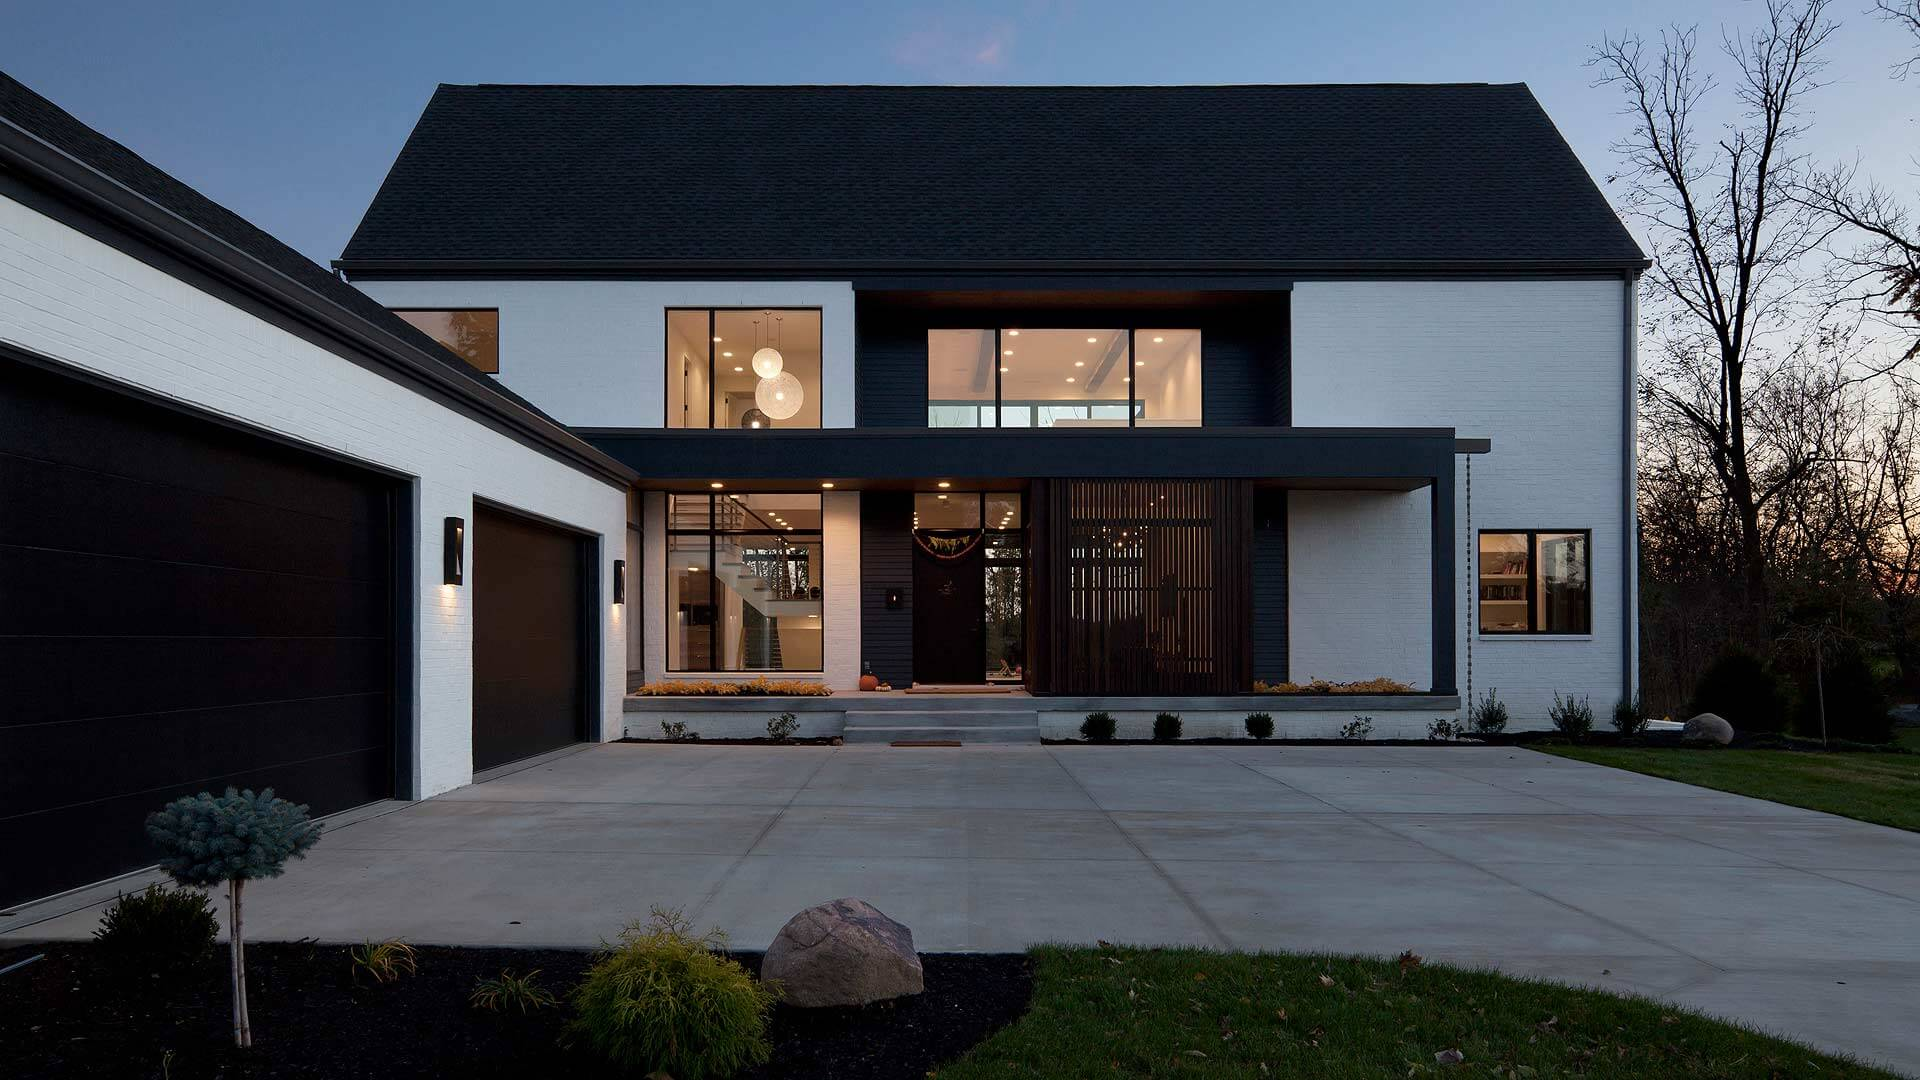 Front twilight exterior elevation features sliding screenwall, flat entry roof, and rainchain - Towne Oak Estates, Steffe Drive, Carmel, Indiana - Christopher Short, Derek Mills - Indianapolis Architects, HAUS | Architecture For Modern Lifestyles